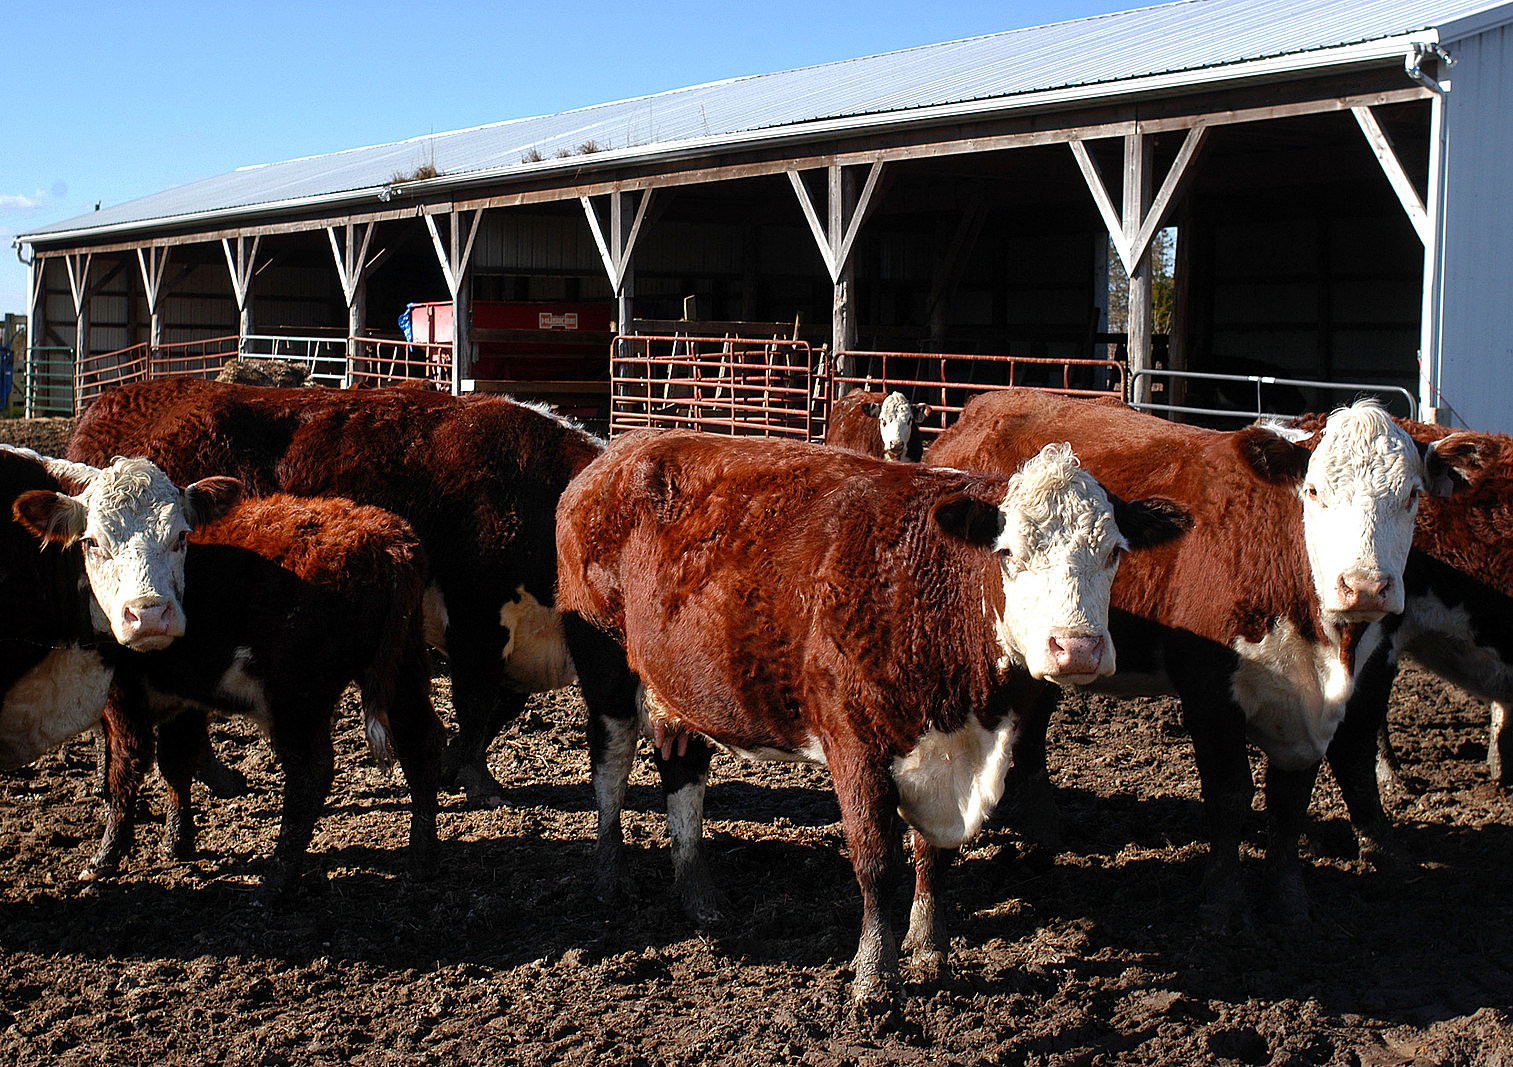 Unhappy with Prices, Ranchers Look to Build Own Meat Plants